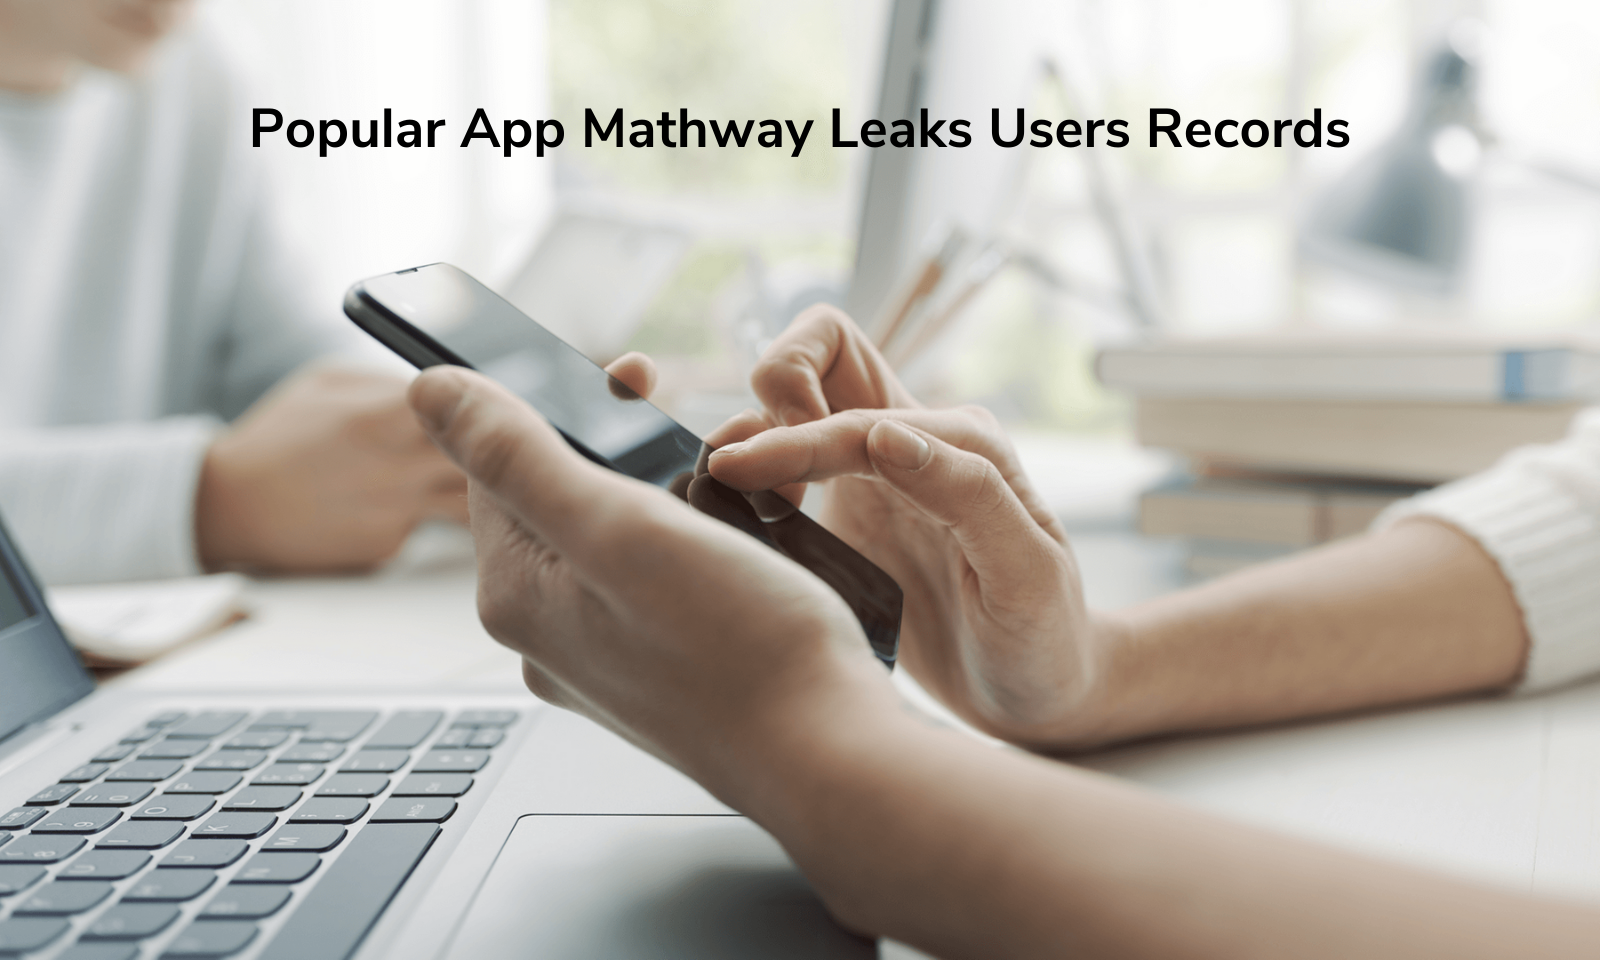 Popular App Mathway Leaks Users Records